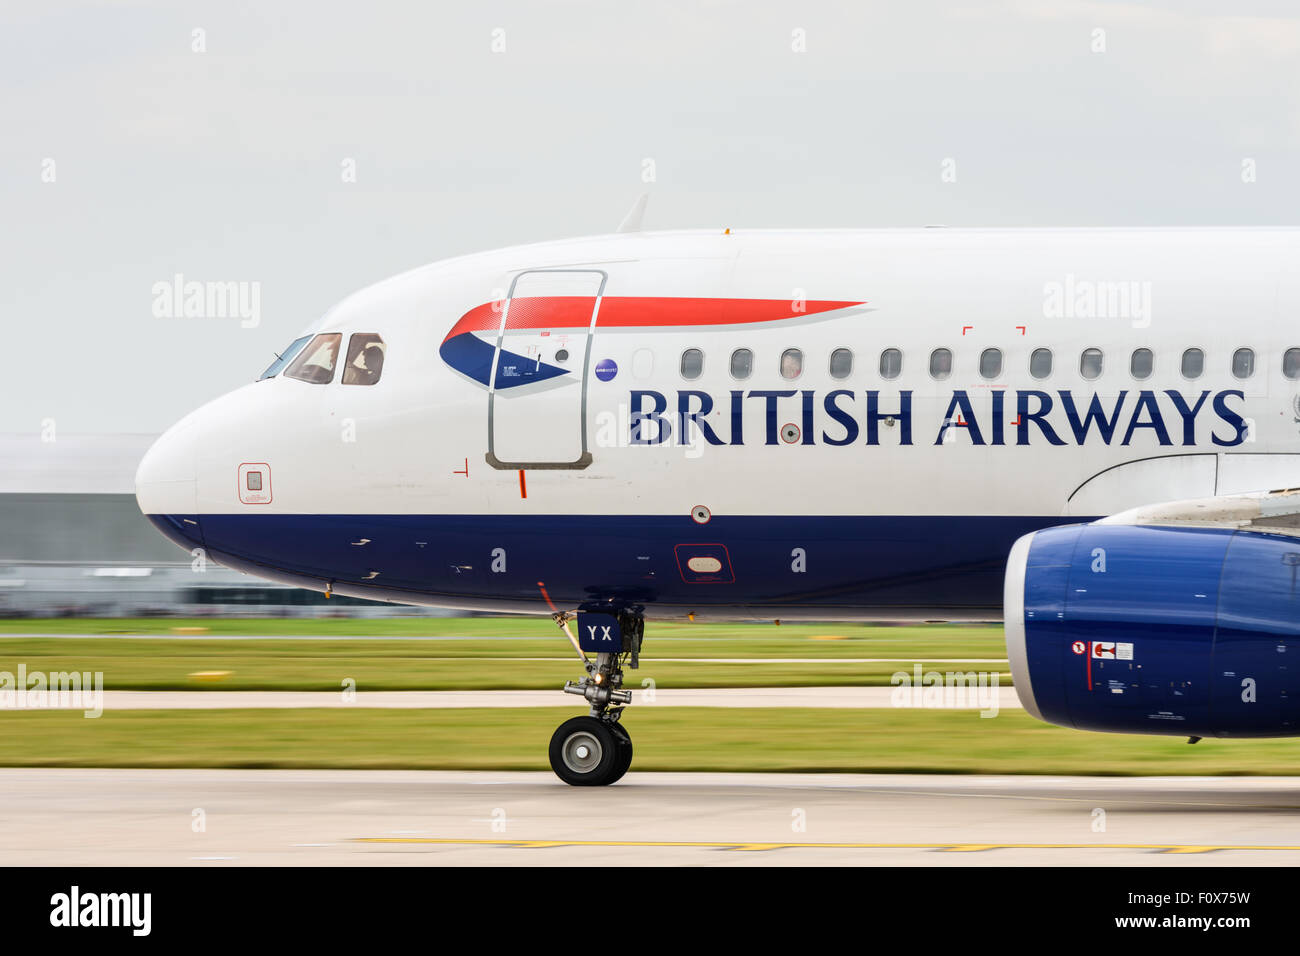 British Airways Airbus A320-200 aeroplane taking off from Manchester Airport - Stock Image